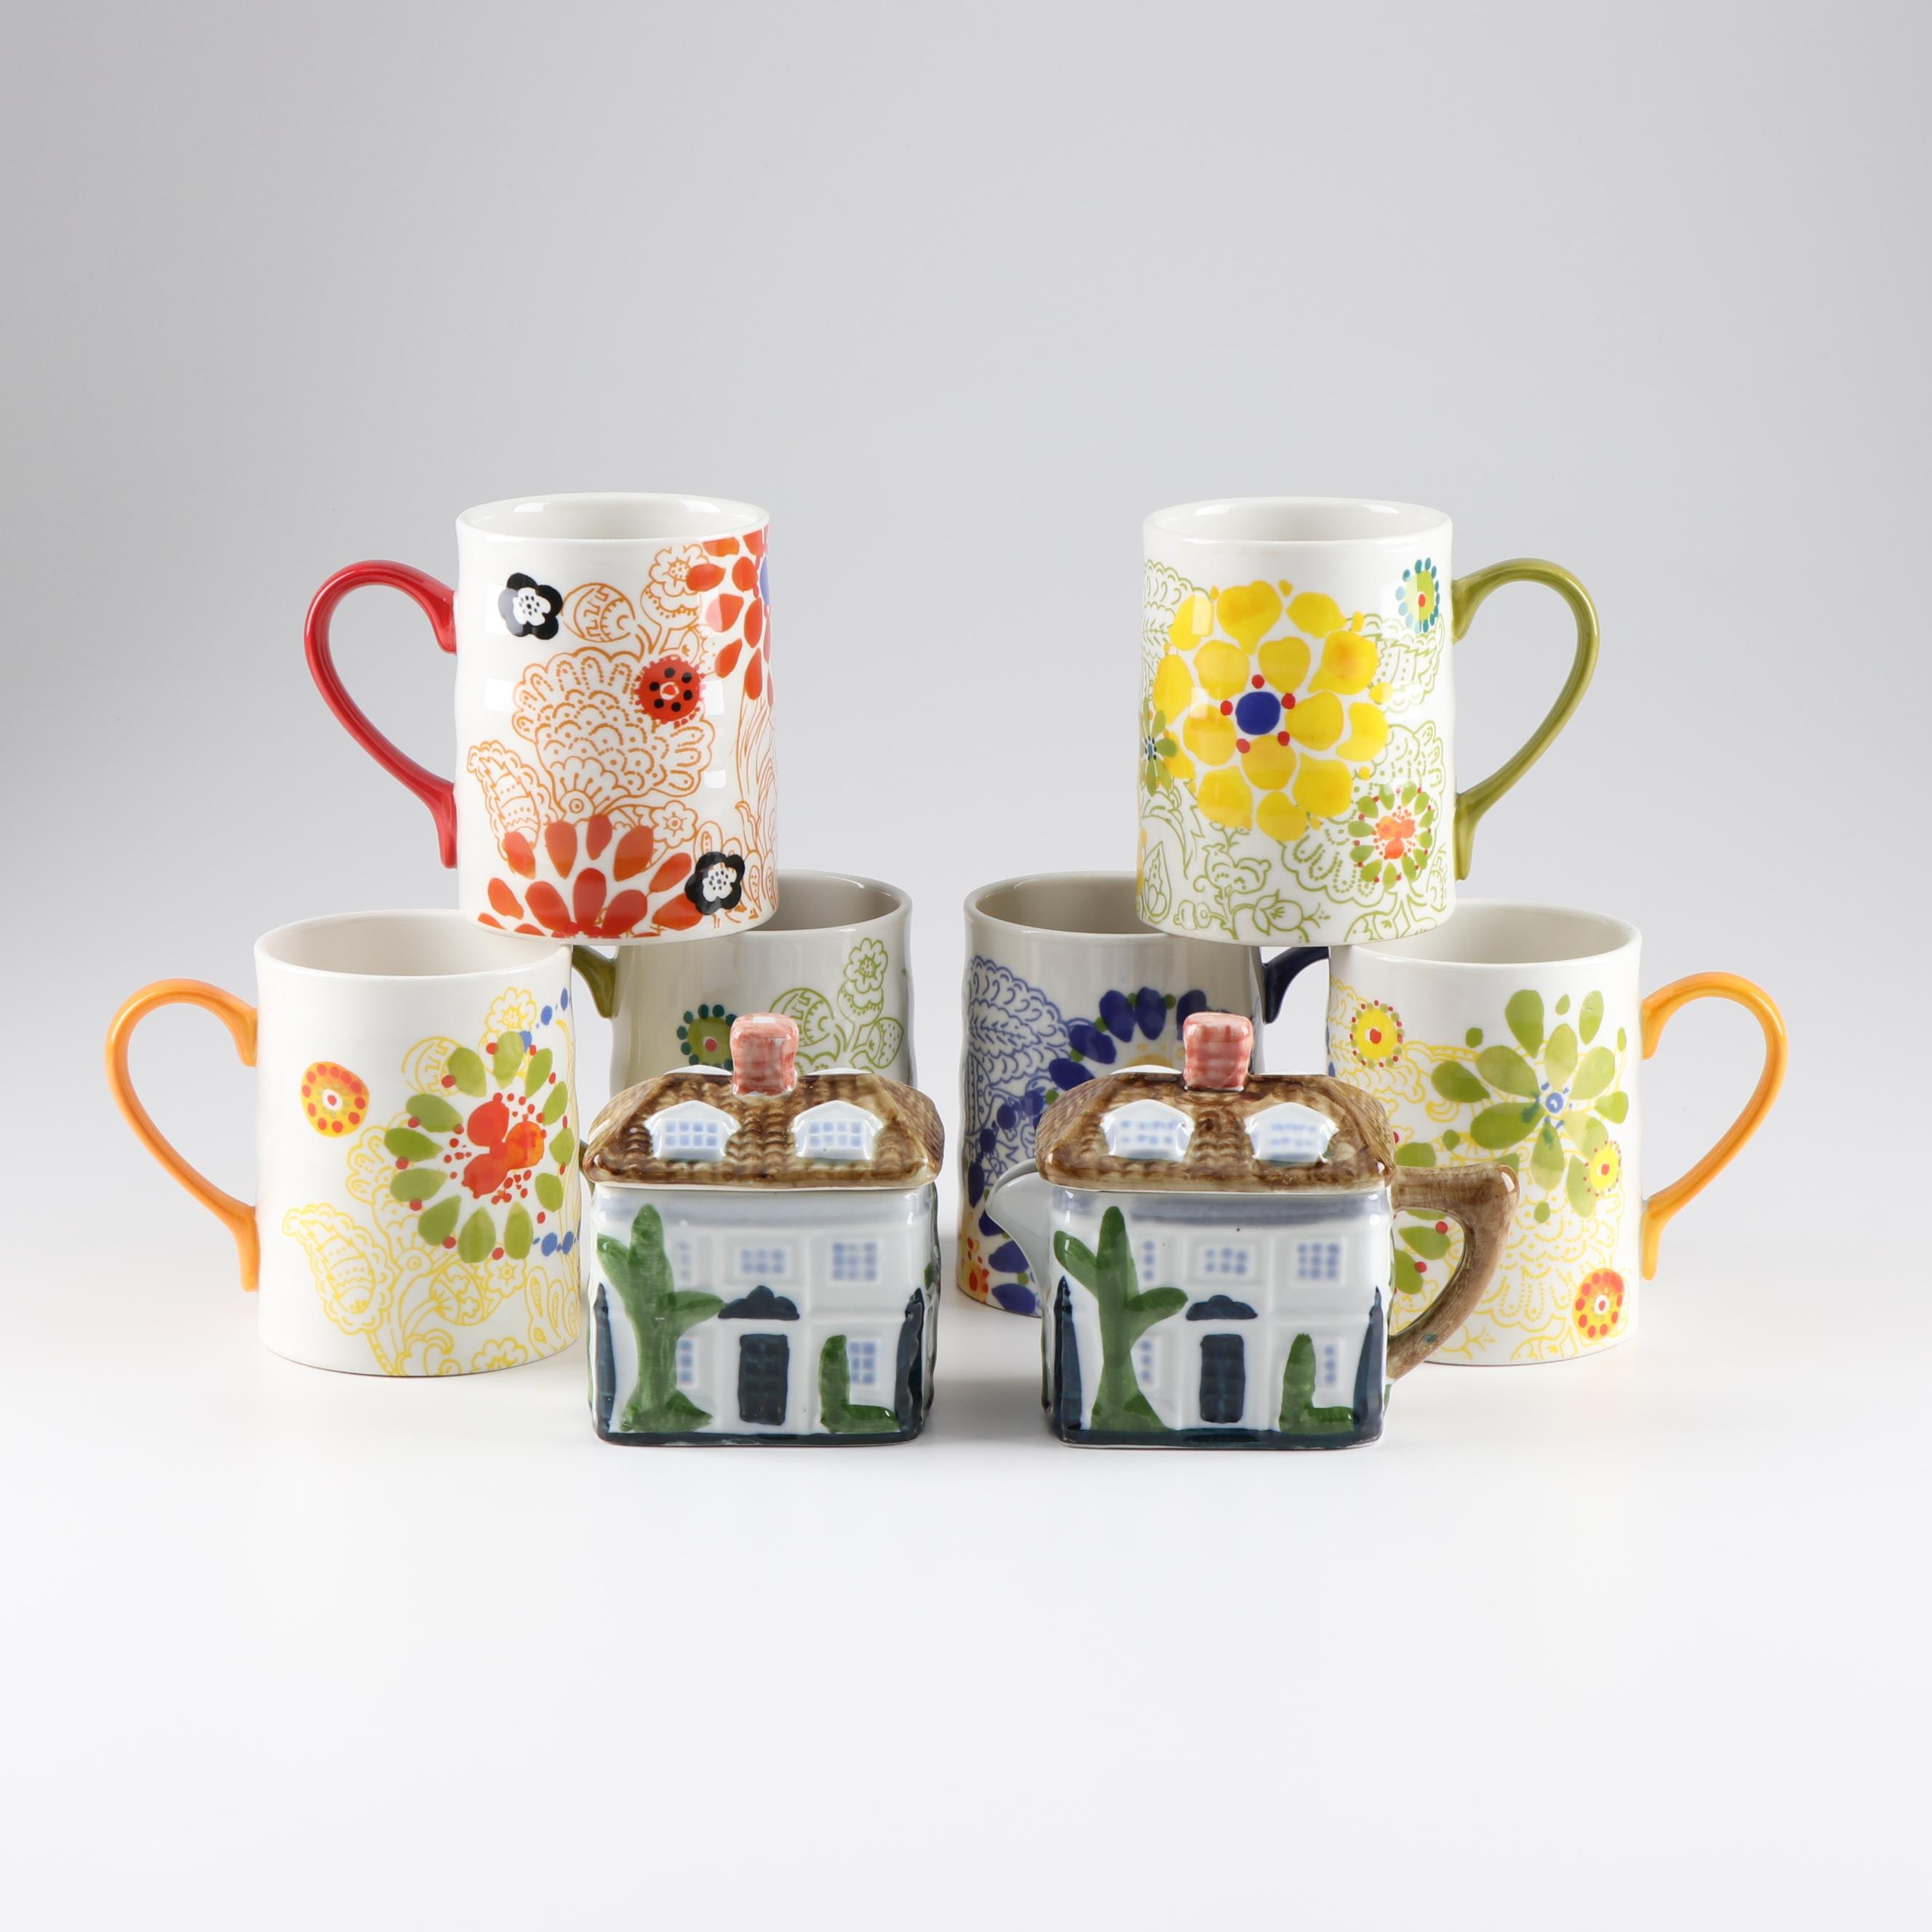 Kitchenware Featuring Mugs by Biscuit